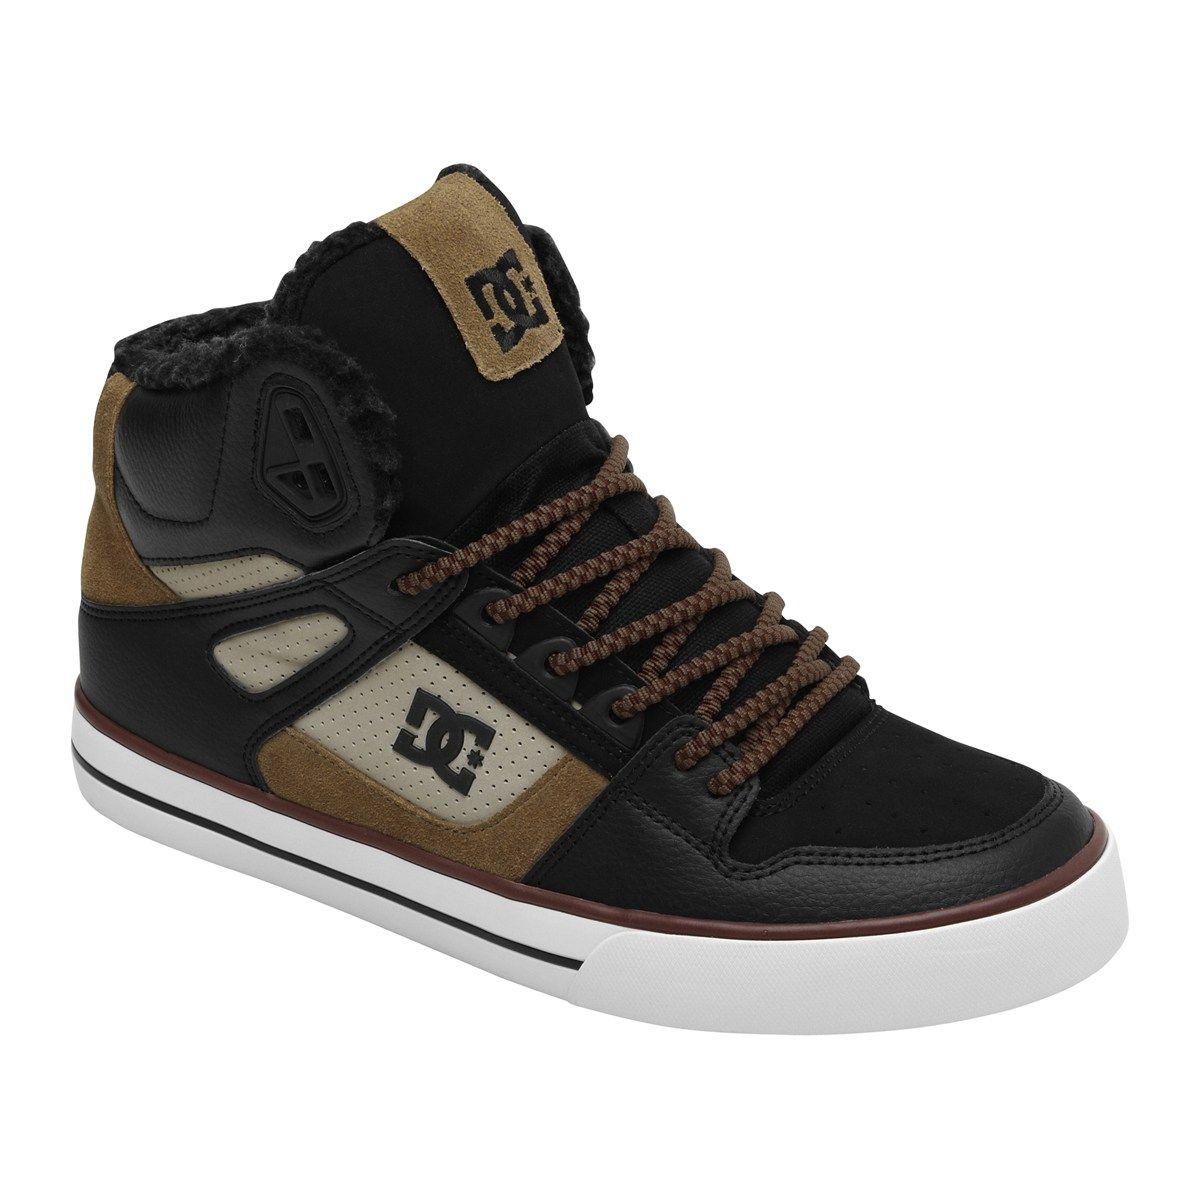 Dc Men S Spartan Hi Wc Skate Shoes Brown